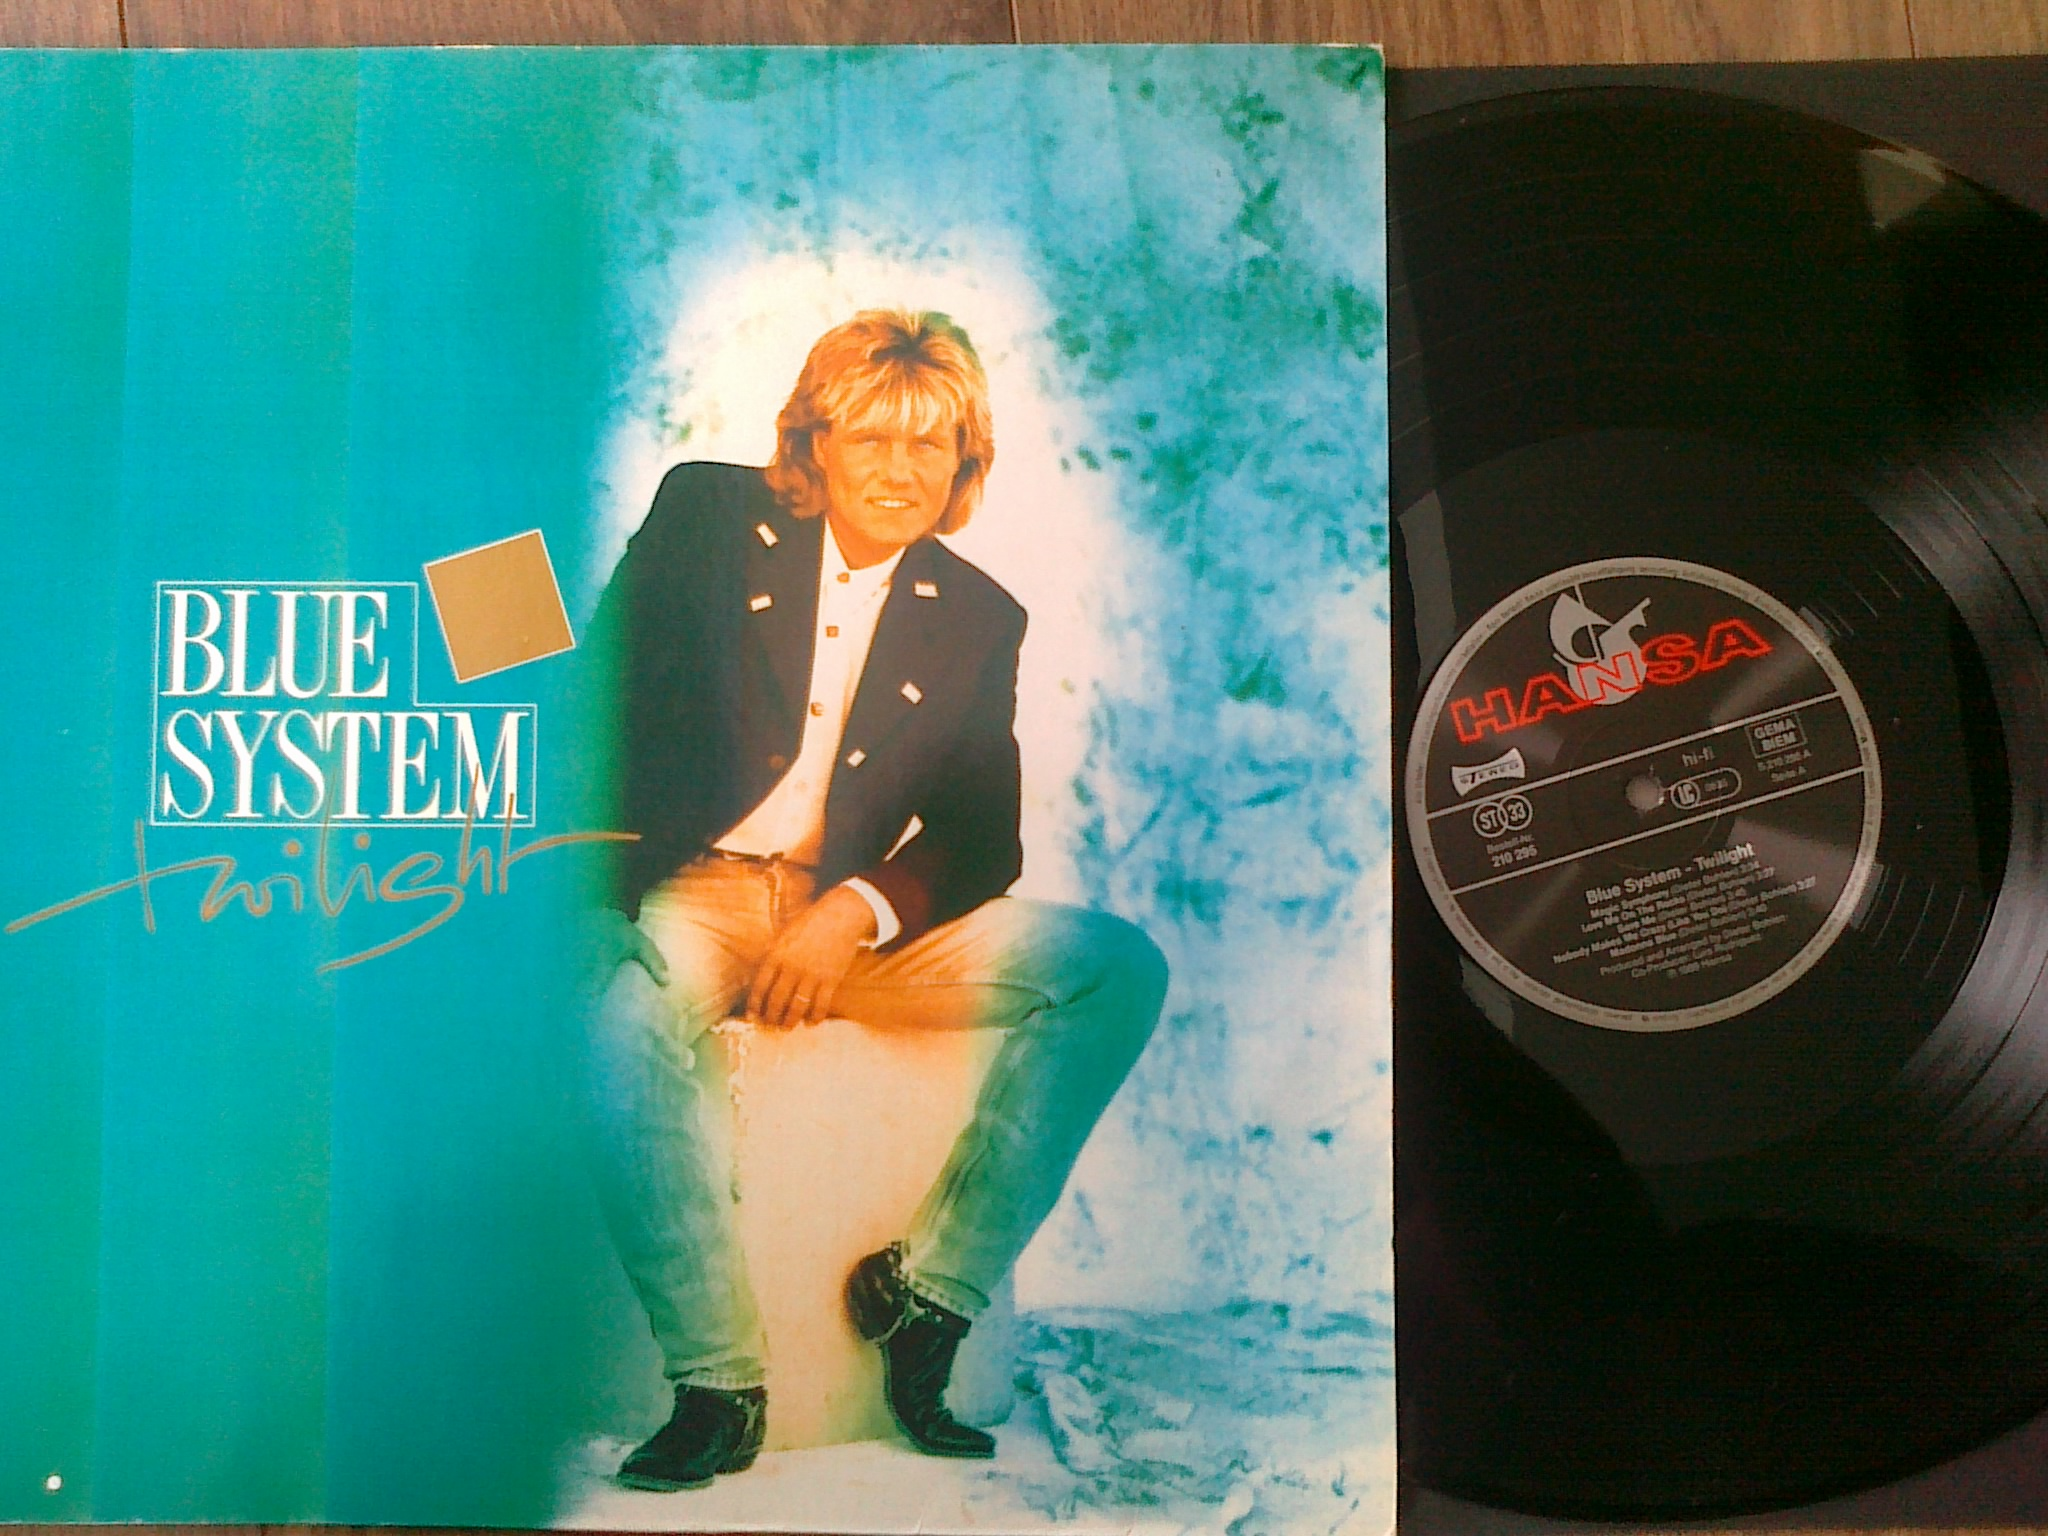 Blue System - Twilight LP